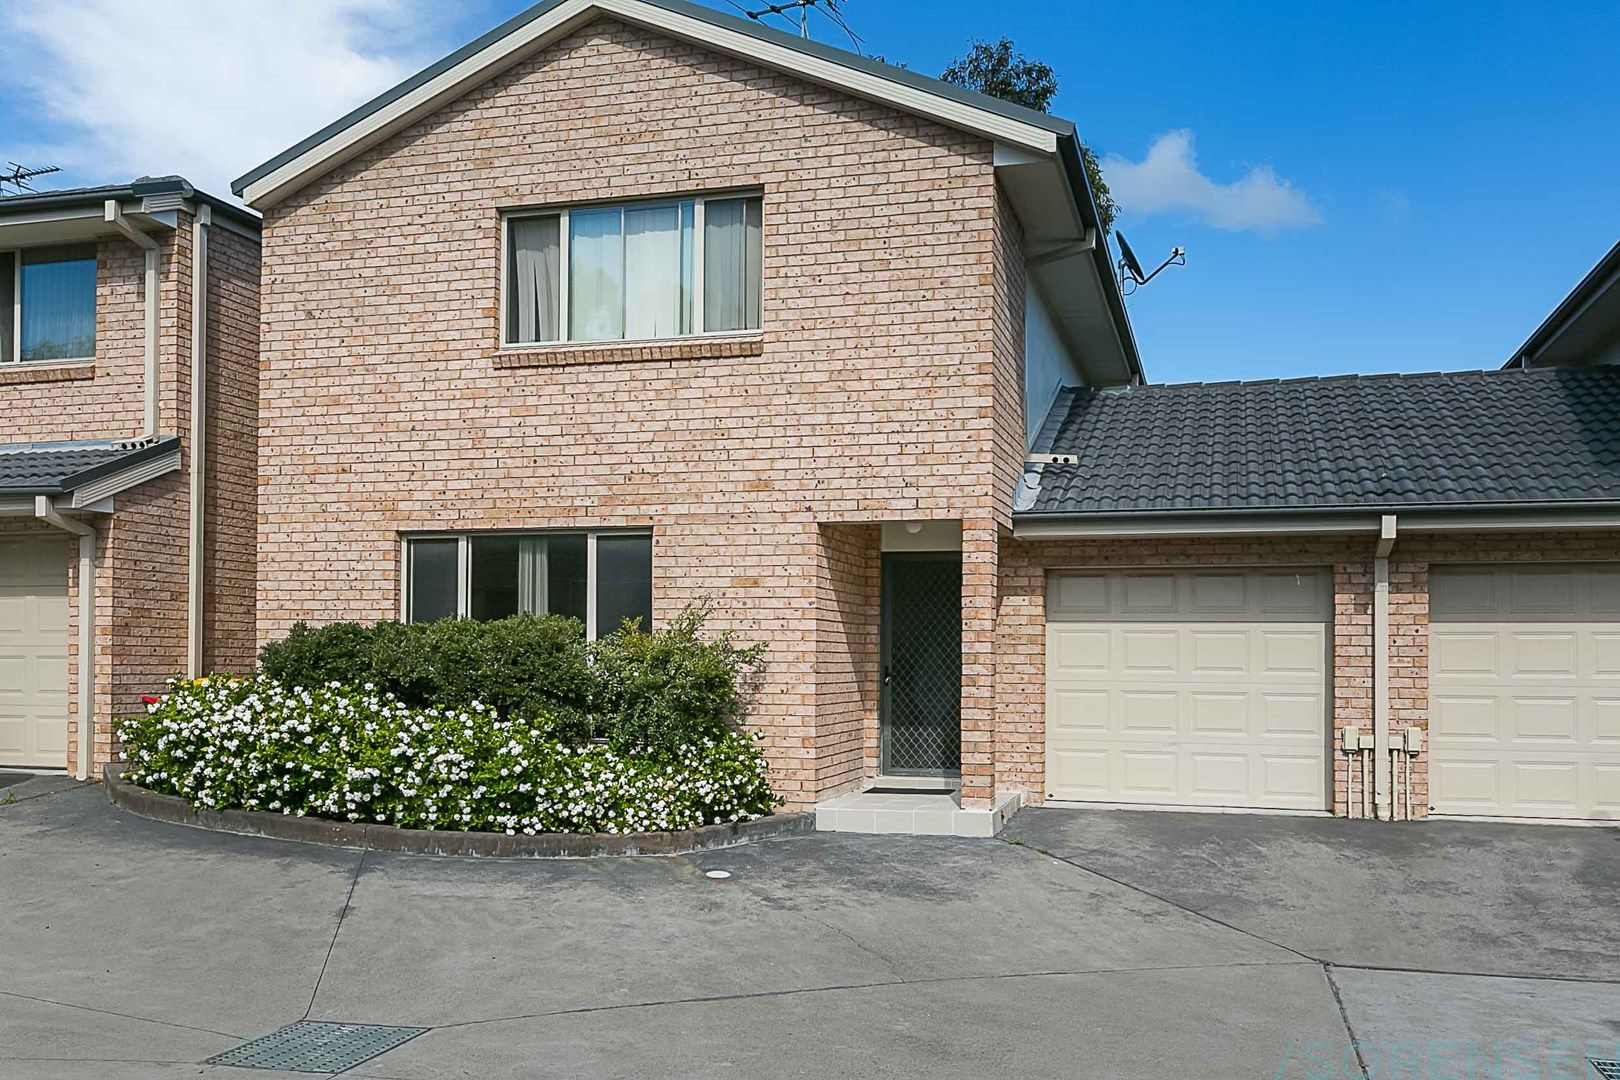 2/19-20 Middle Tree Close, Hamlyn Terrace NSW 2259, Image 0